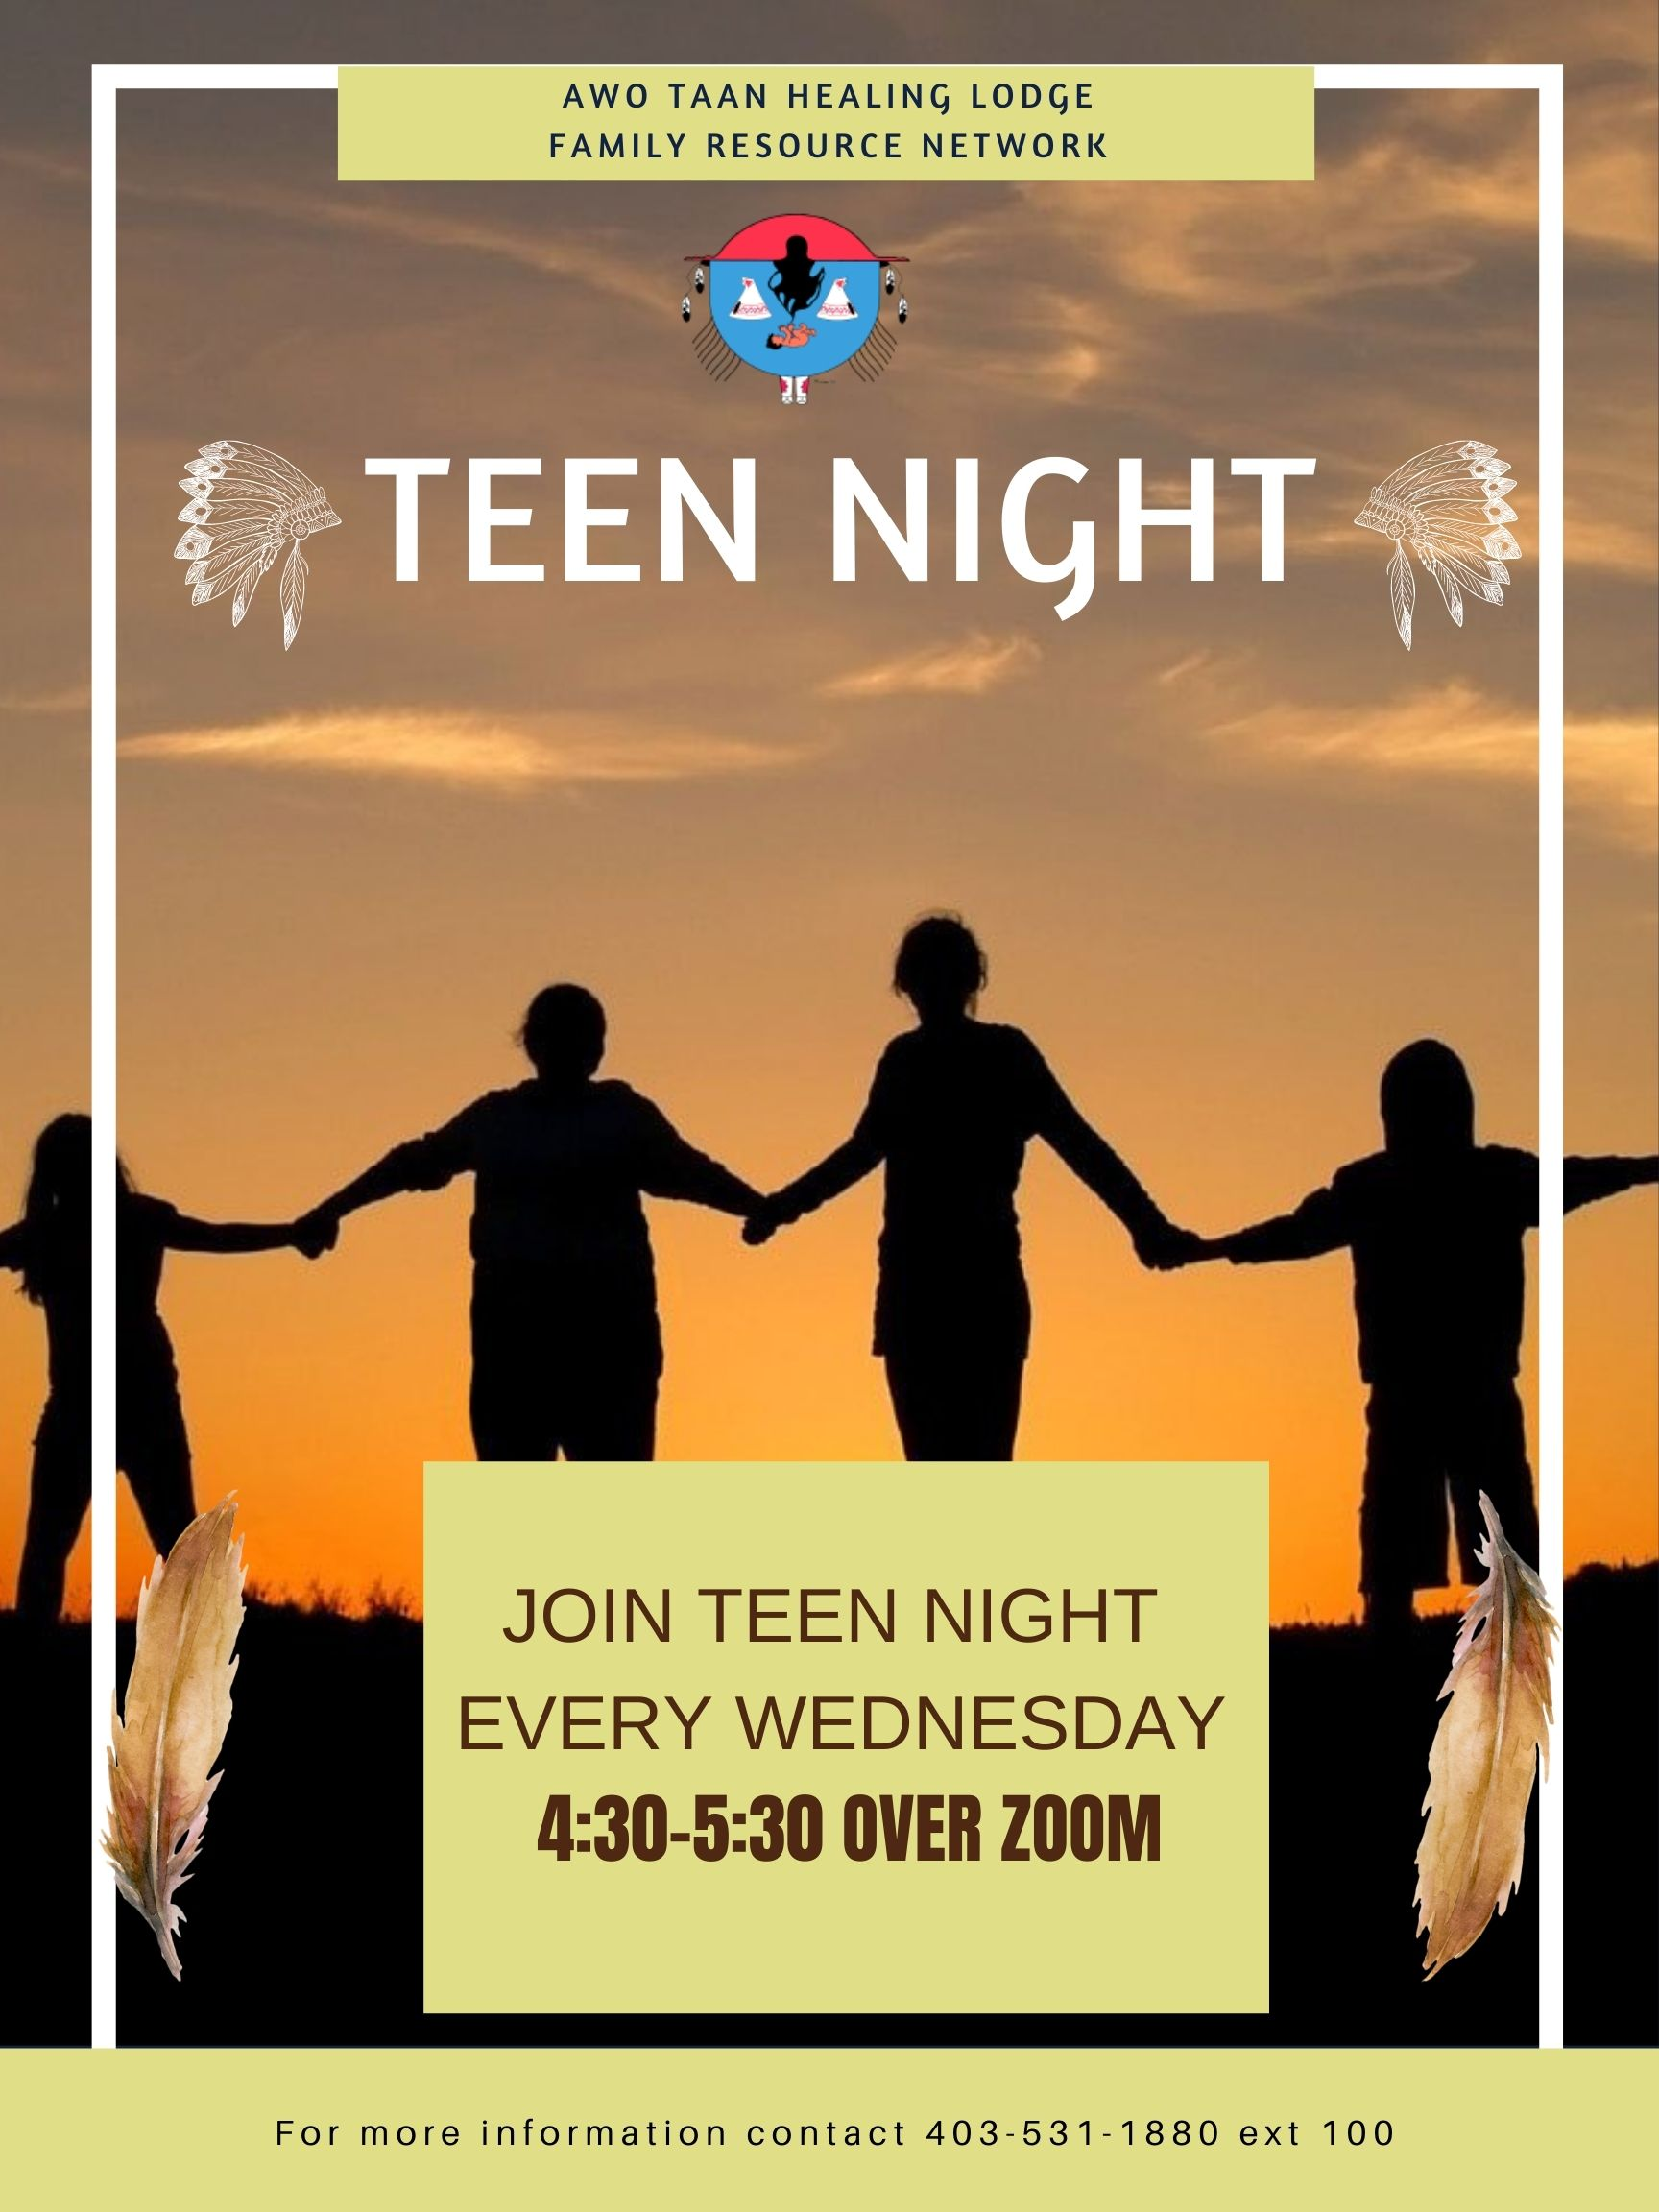 Awo Taan Healing Lodge | Family Resource Network | Teen Nights